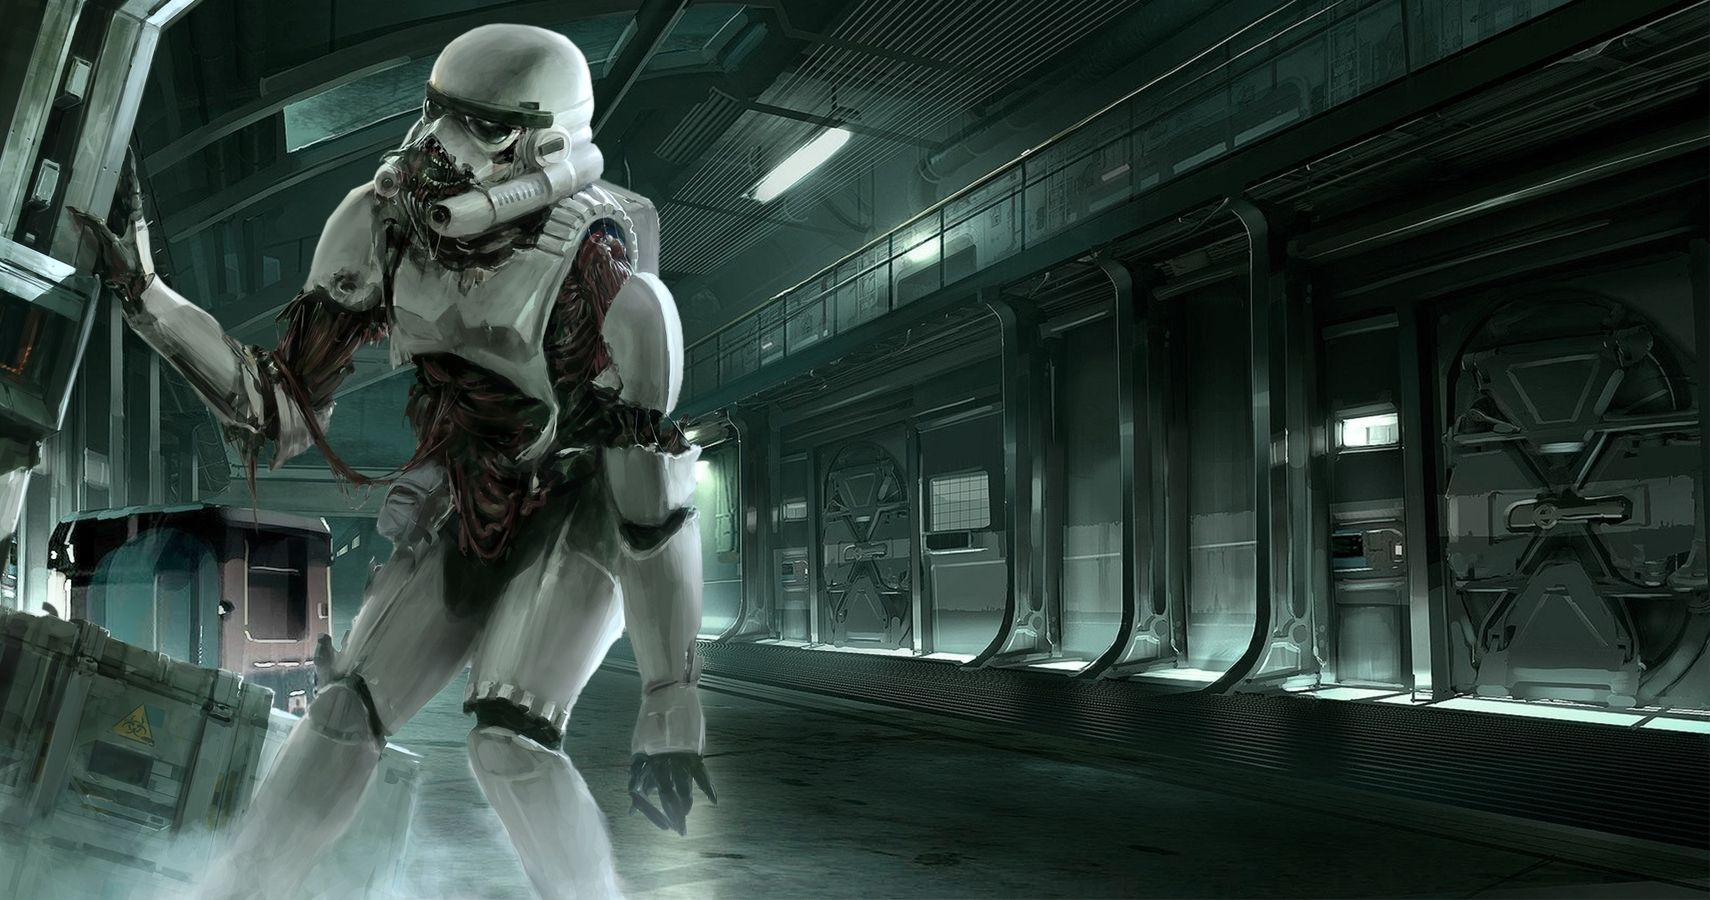 star-wars-death-troopers-featured-image.jpg